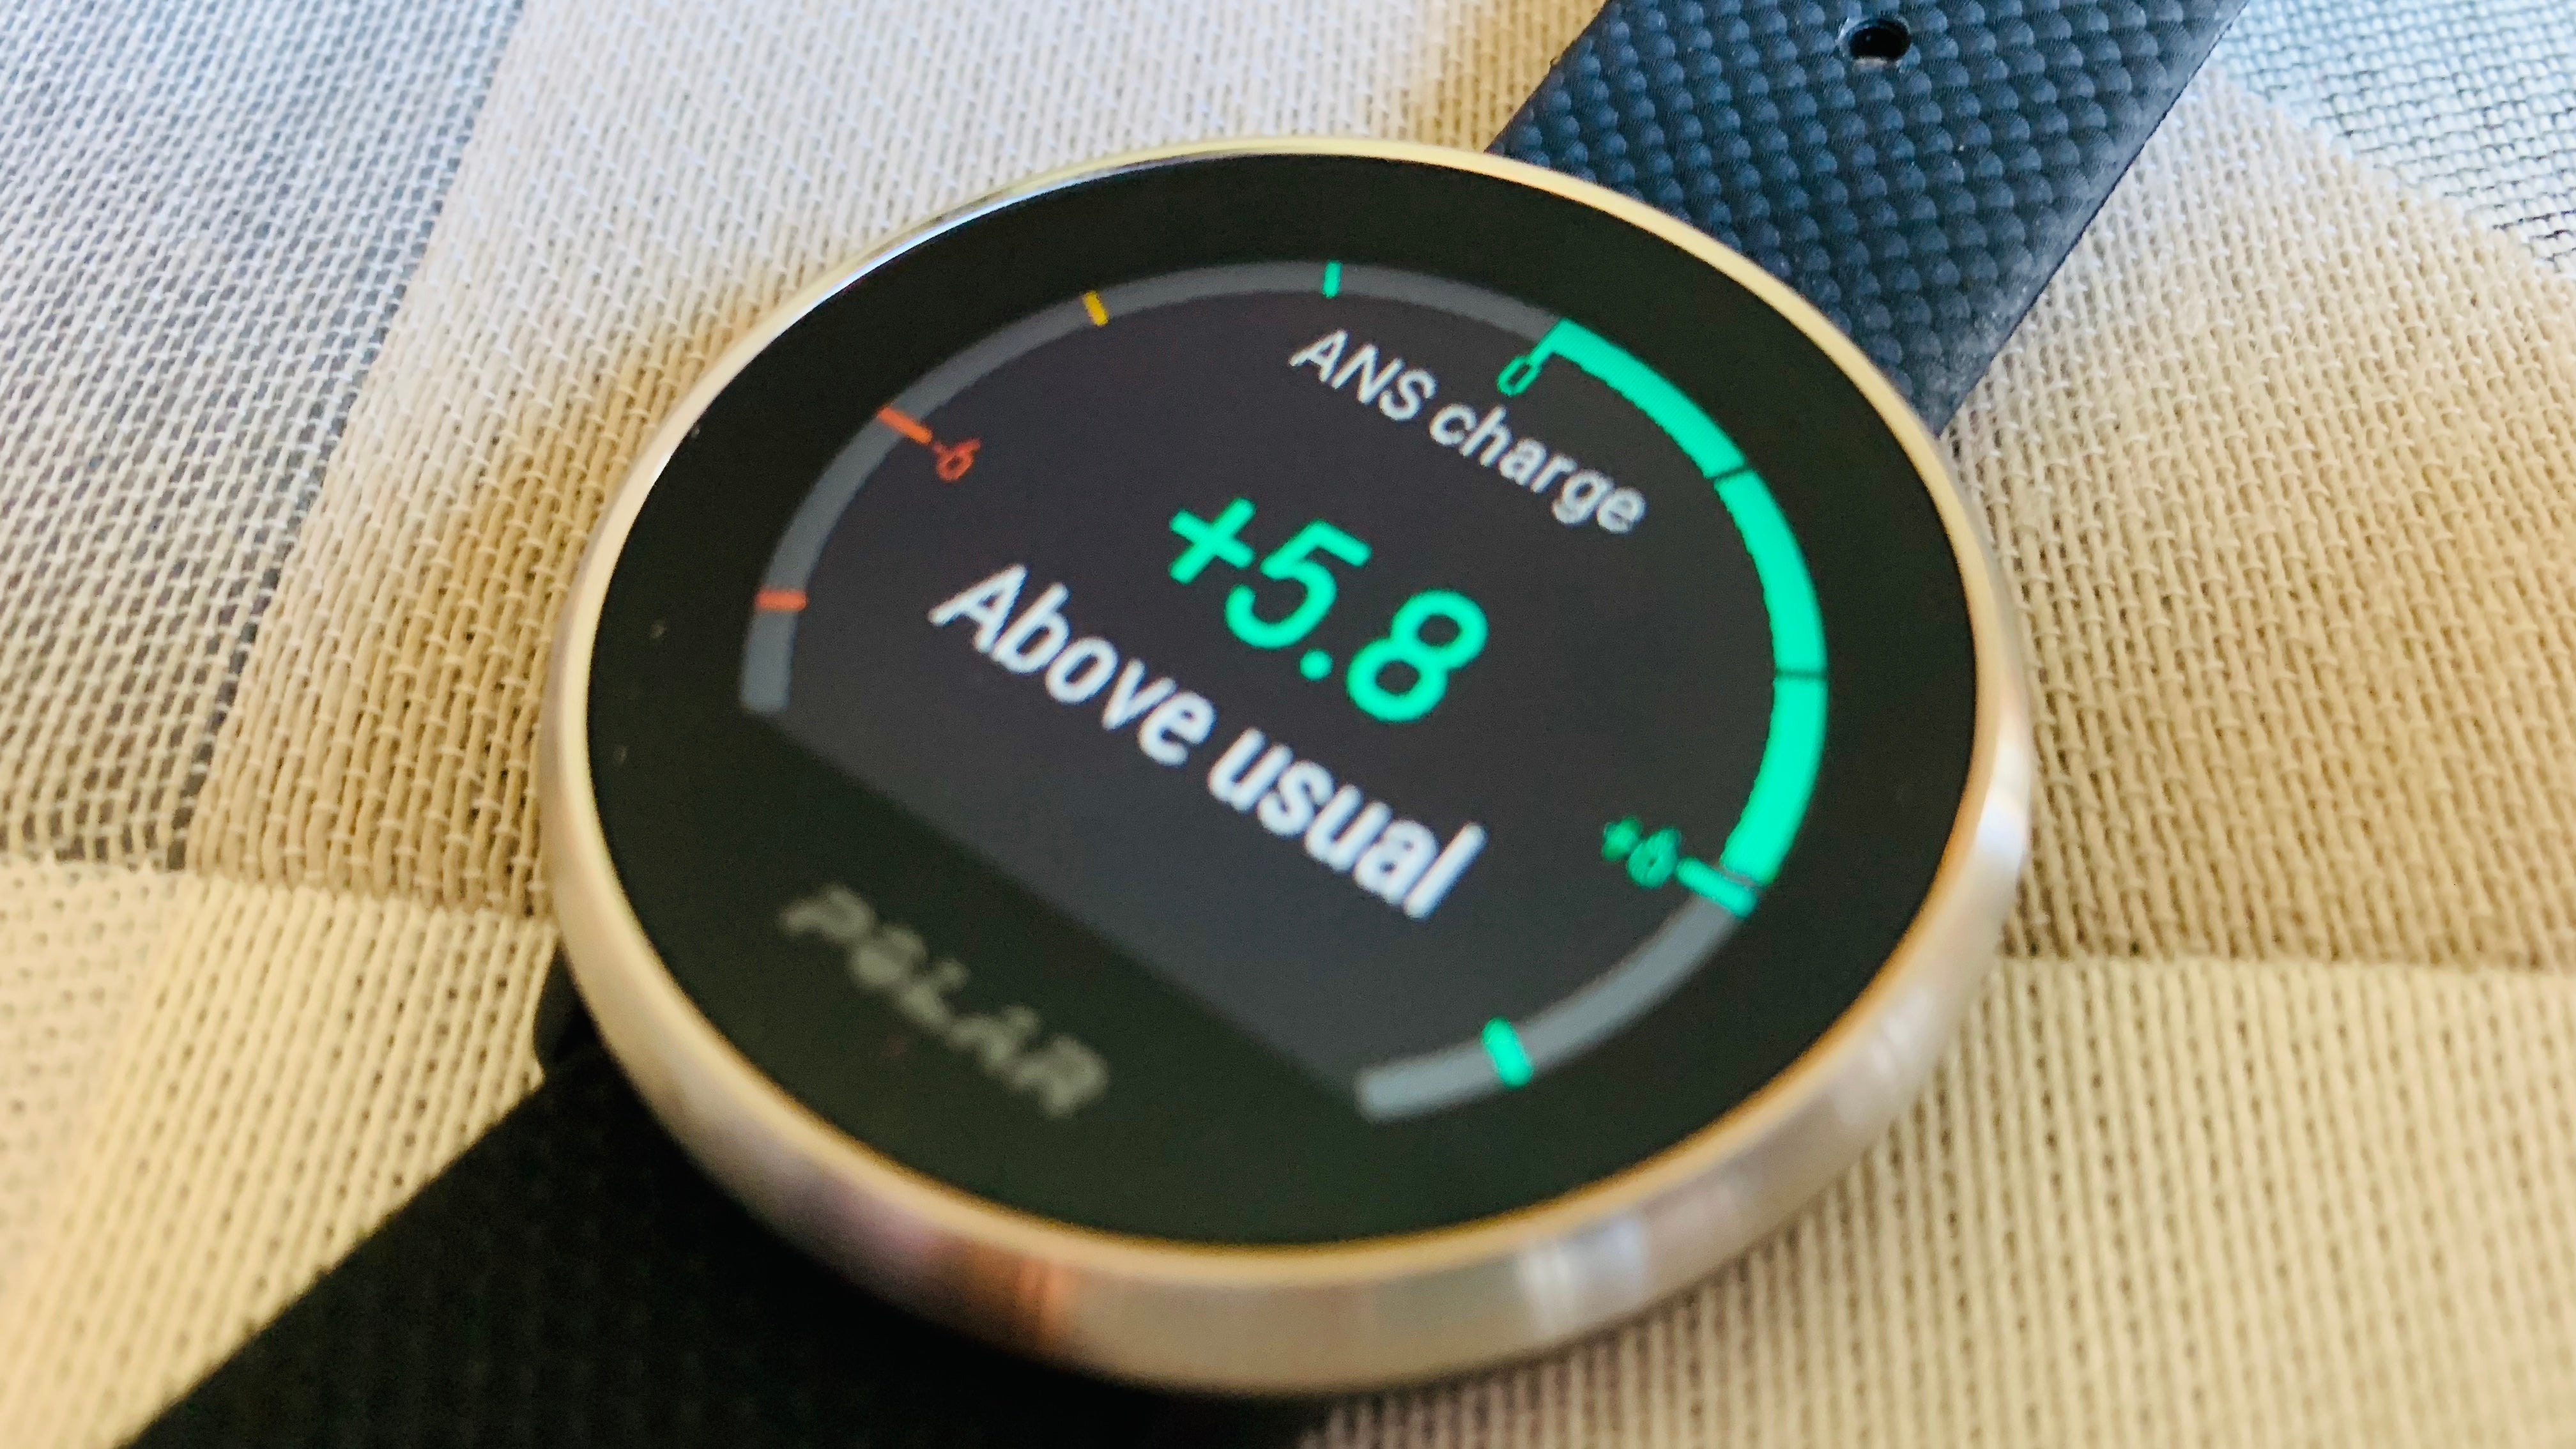 This Fitness Smartwatch Humbled Me Into Taking Recovery Days